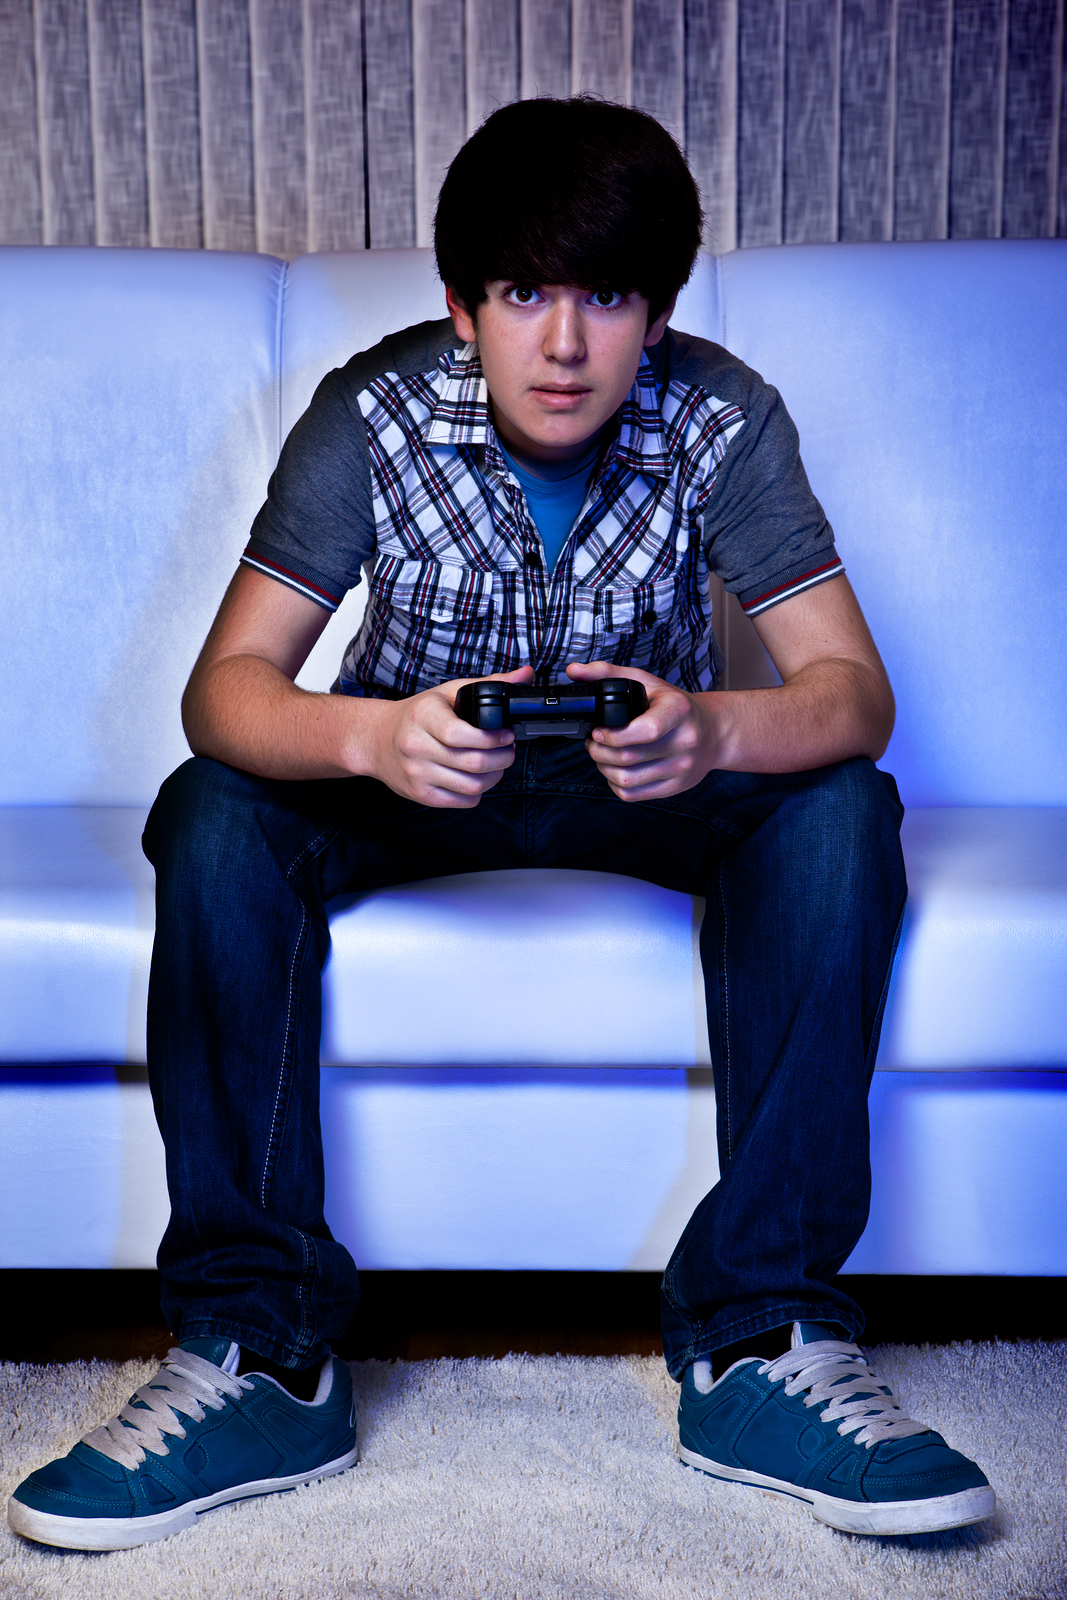 bigstock-Teen-with-joystick-playing-com-26170343.jpg